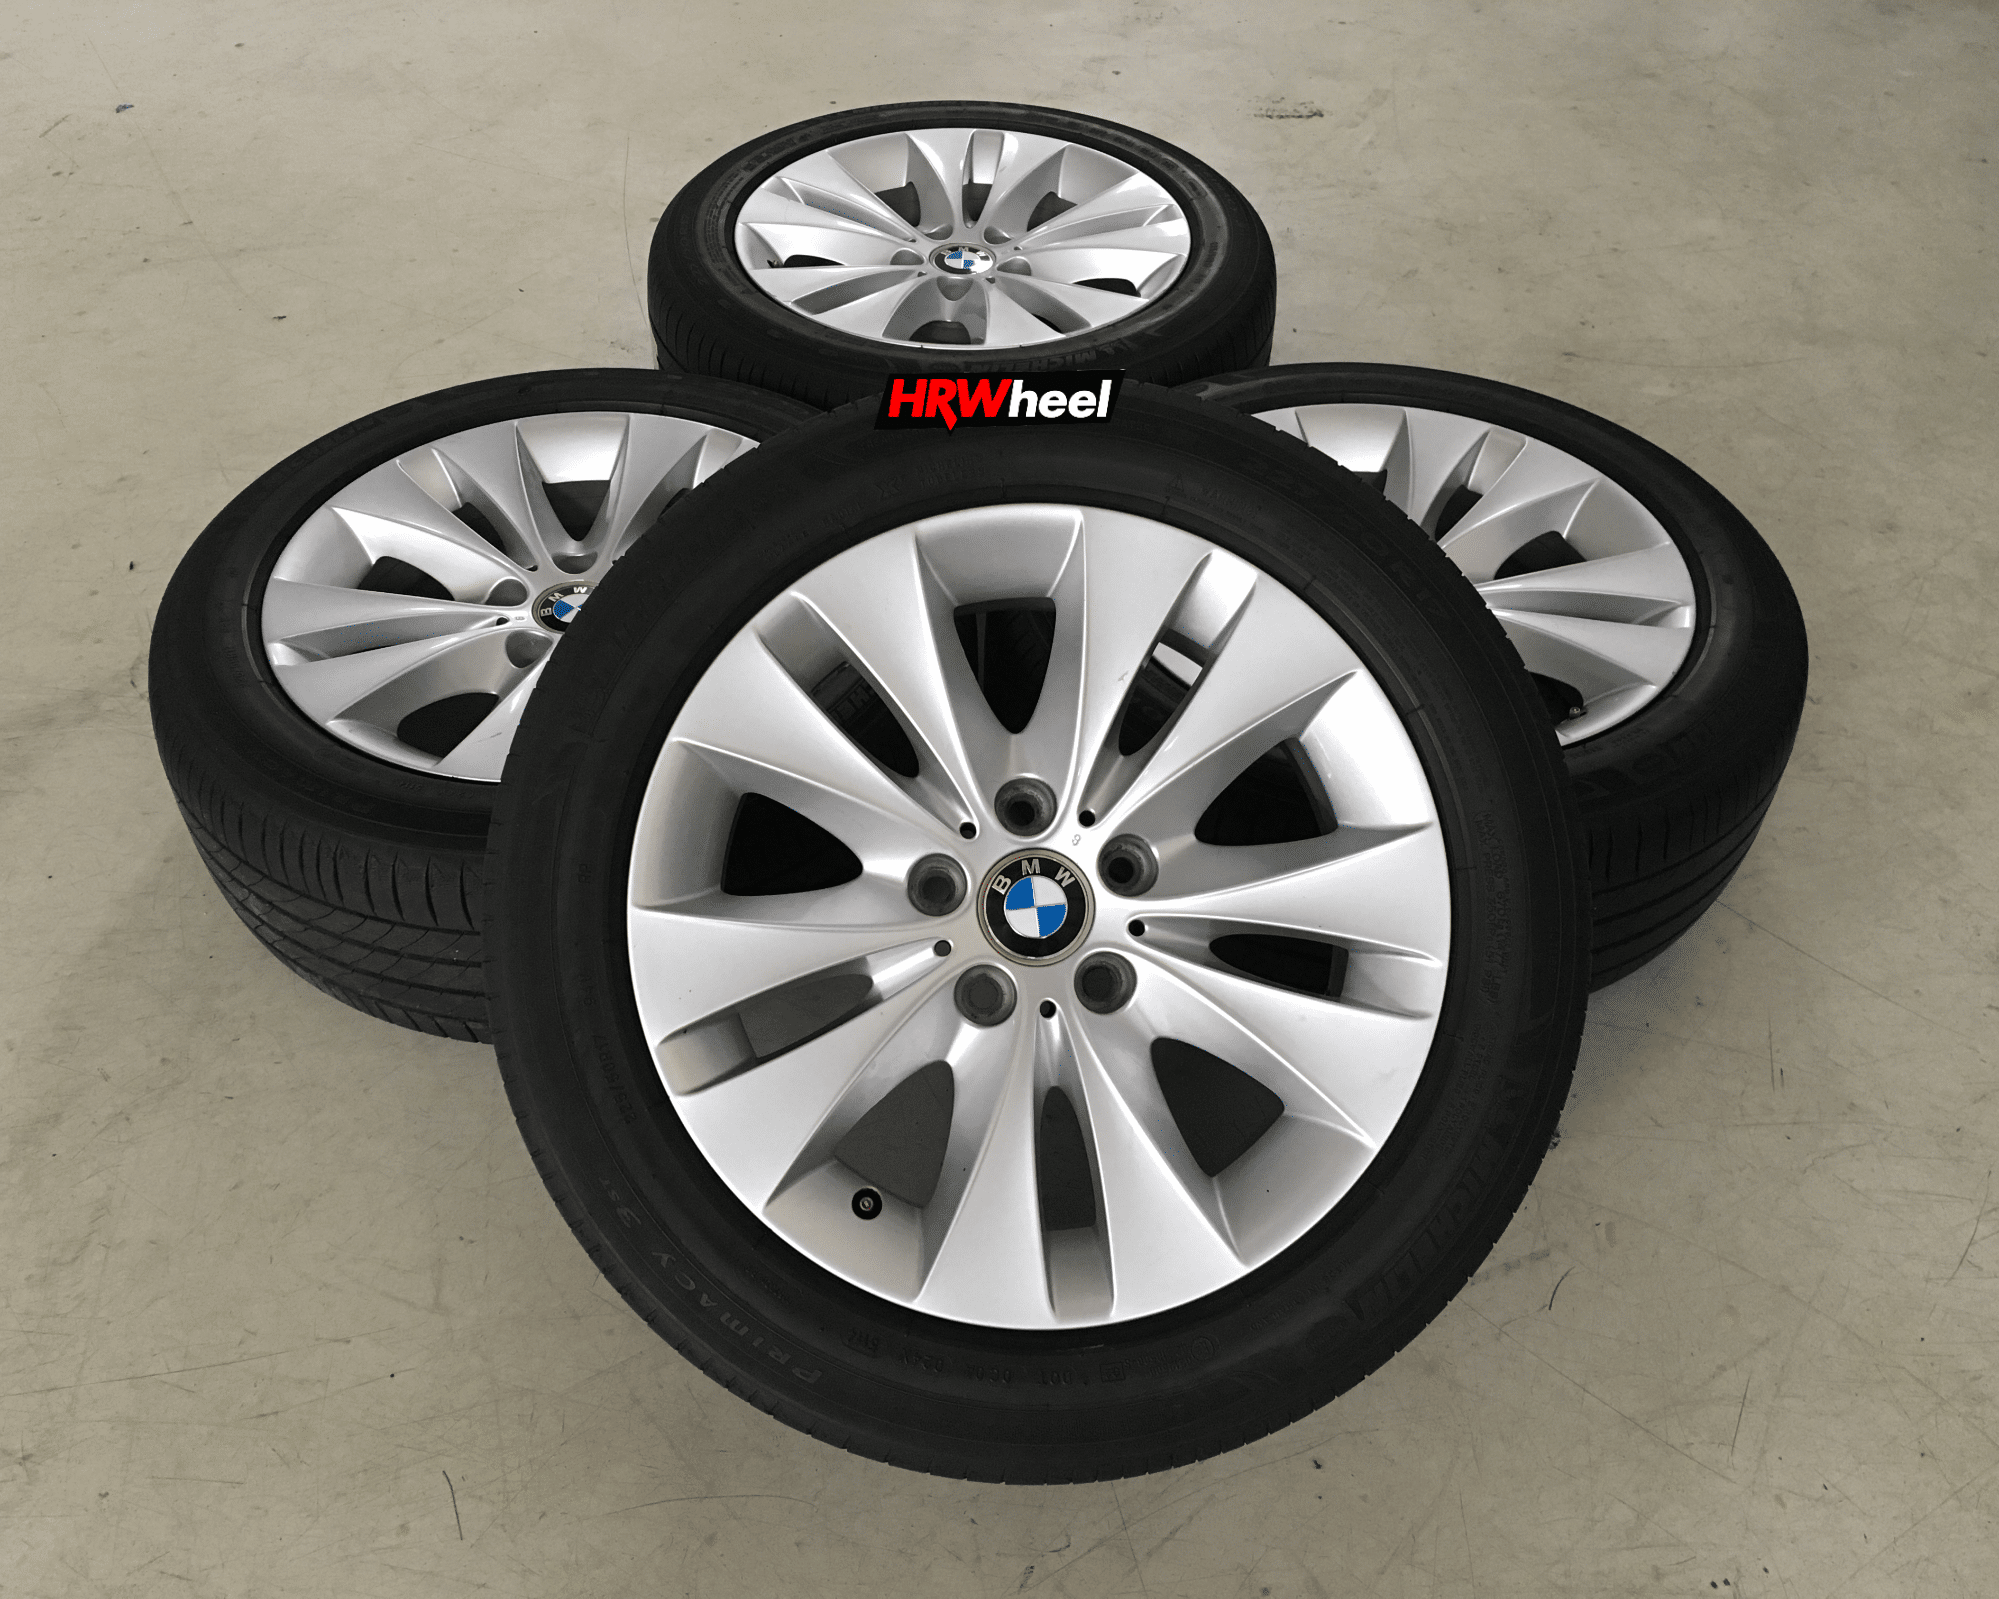 VELG BEKAS OEM BMW E60 523i RING 17 + BAN MICHELIN 225/50/R17